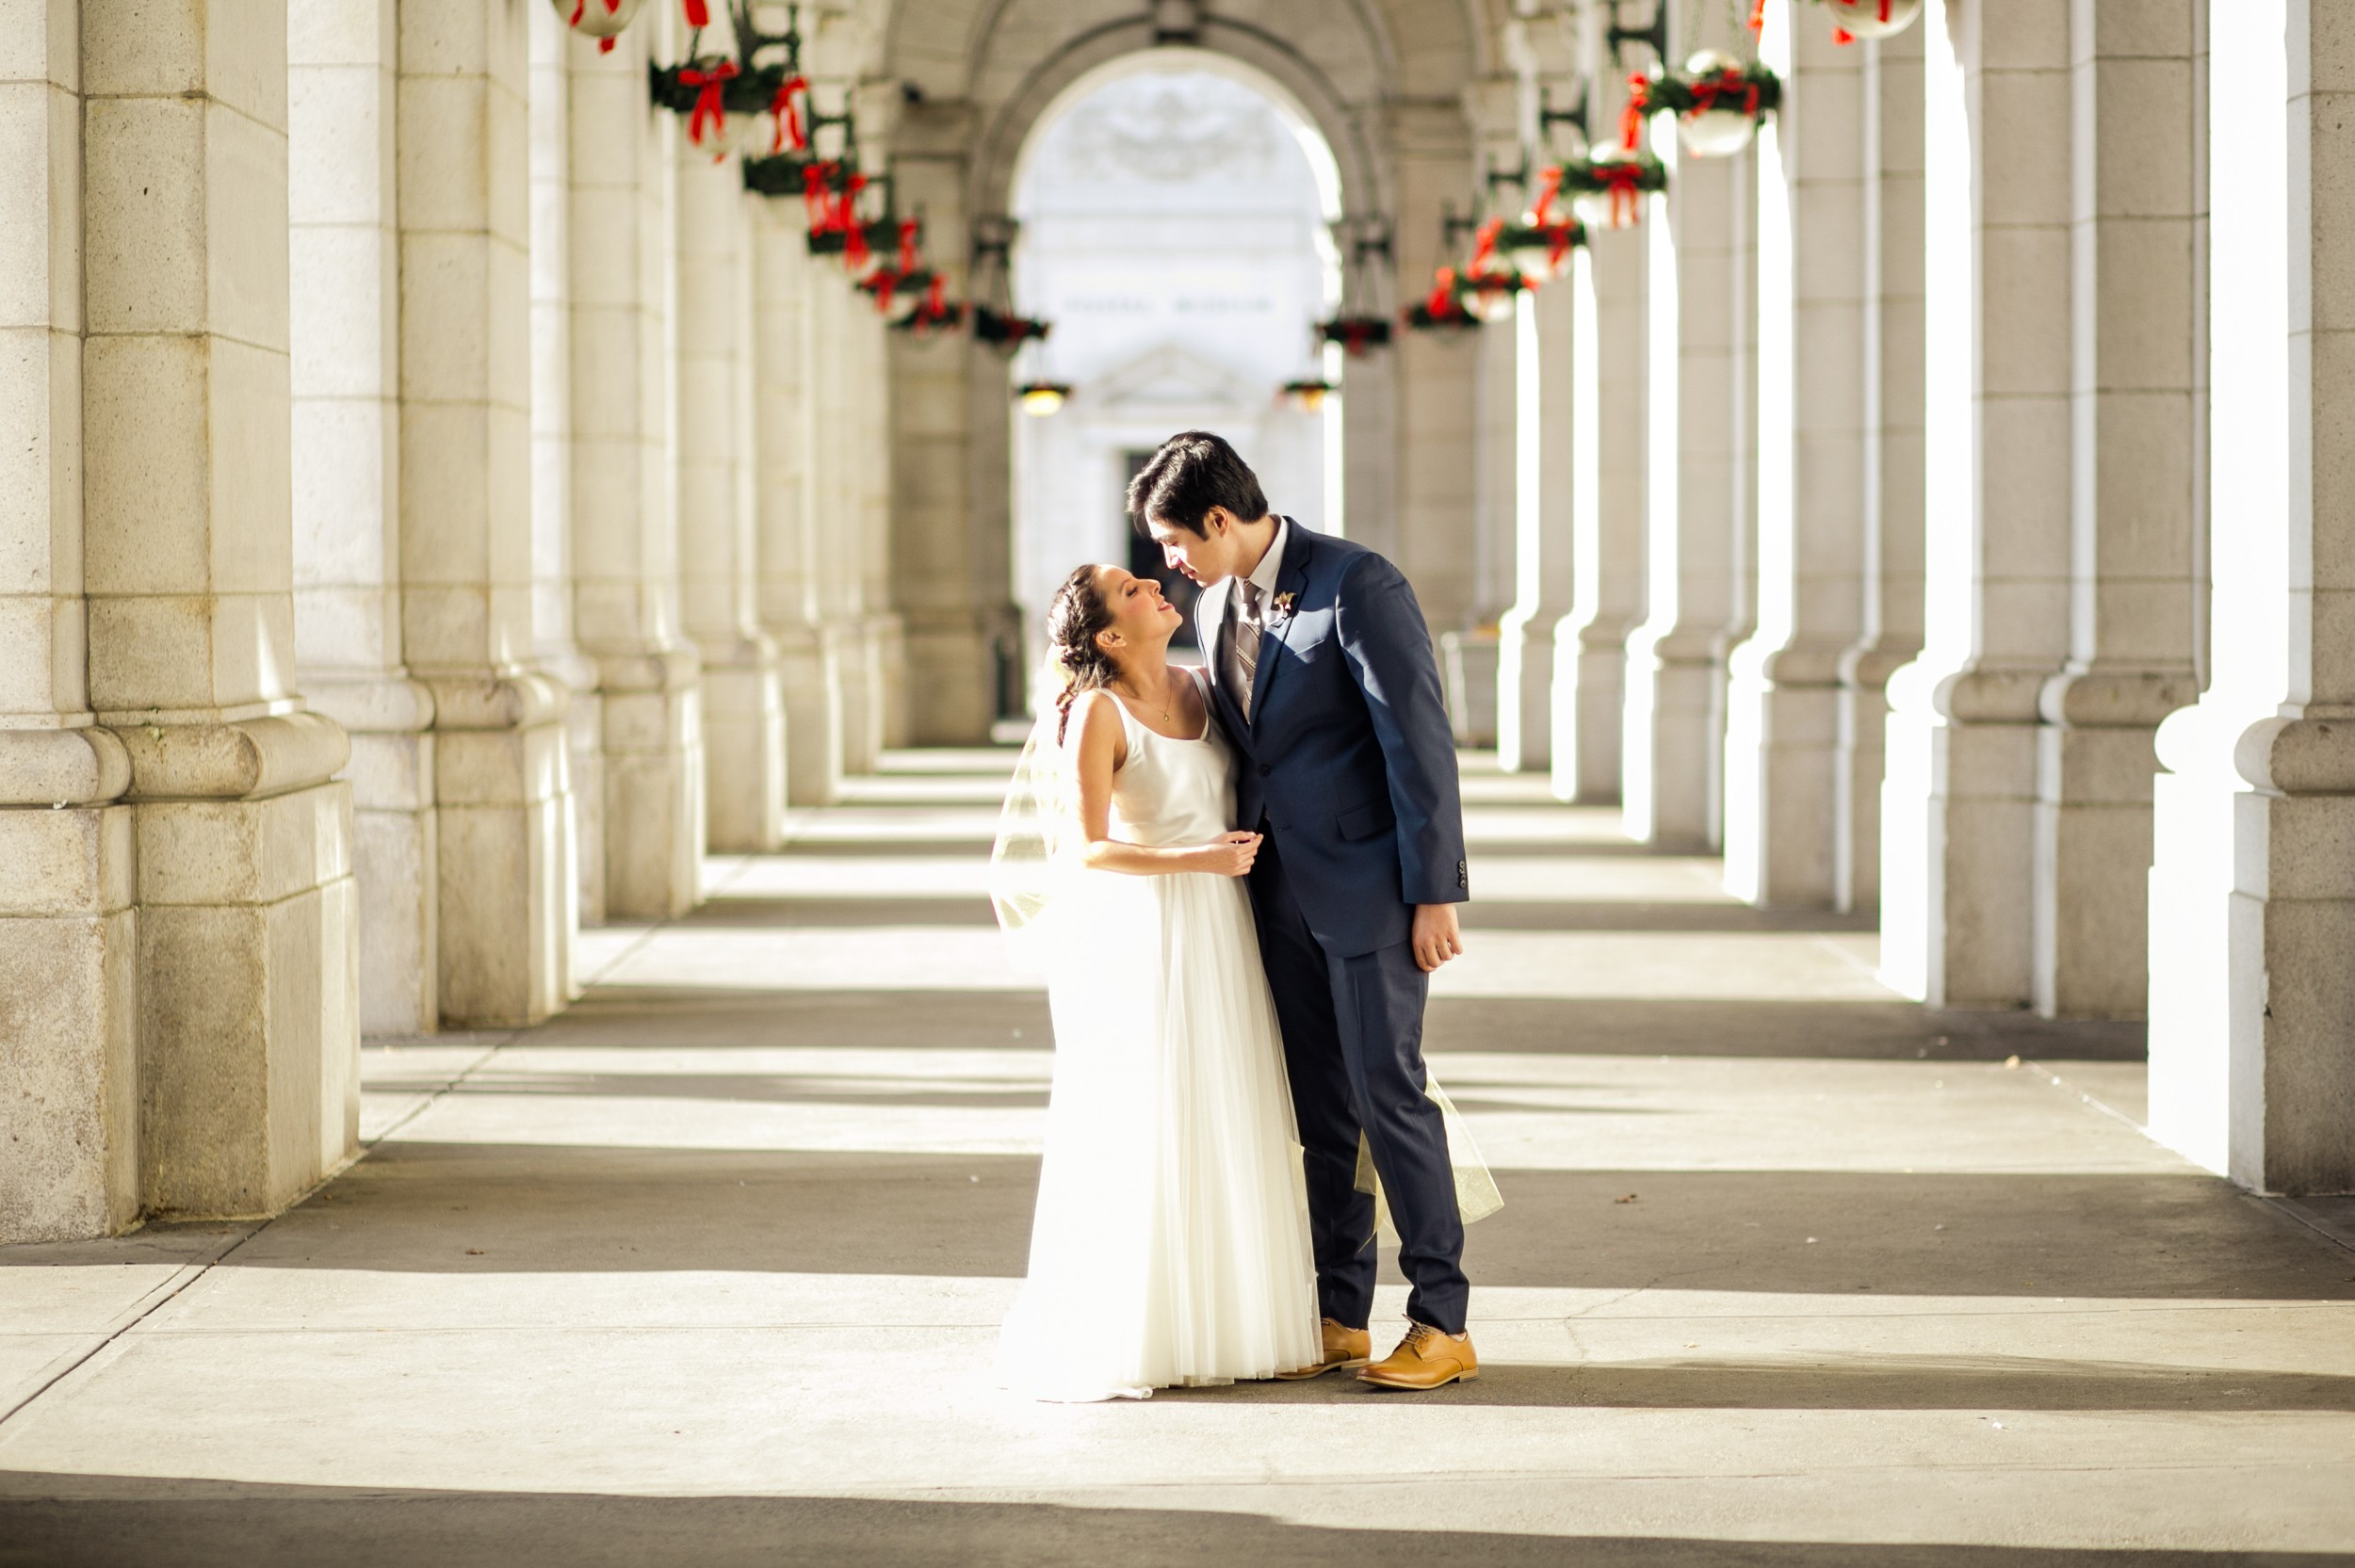 Bride and groom sharing a kiss at Union Station in Washington DC before their Brewery Wedding.